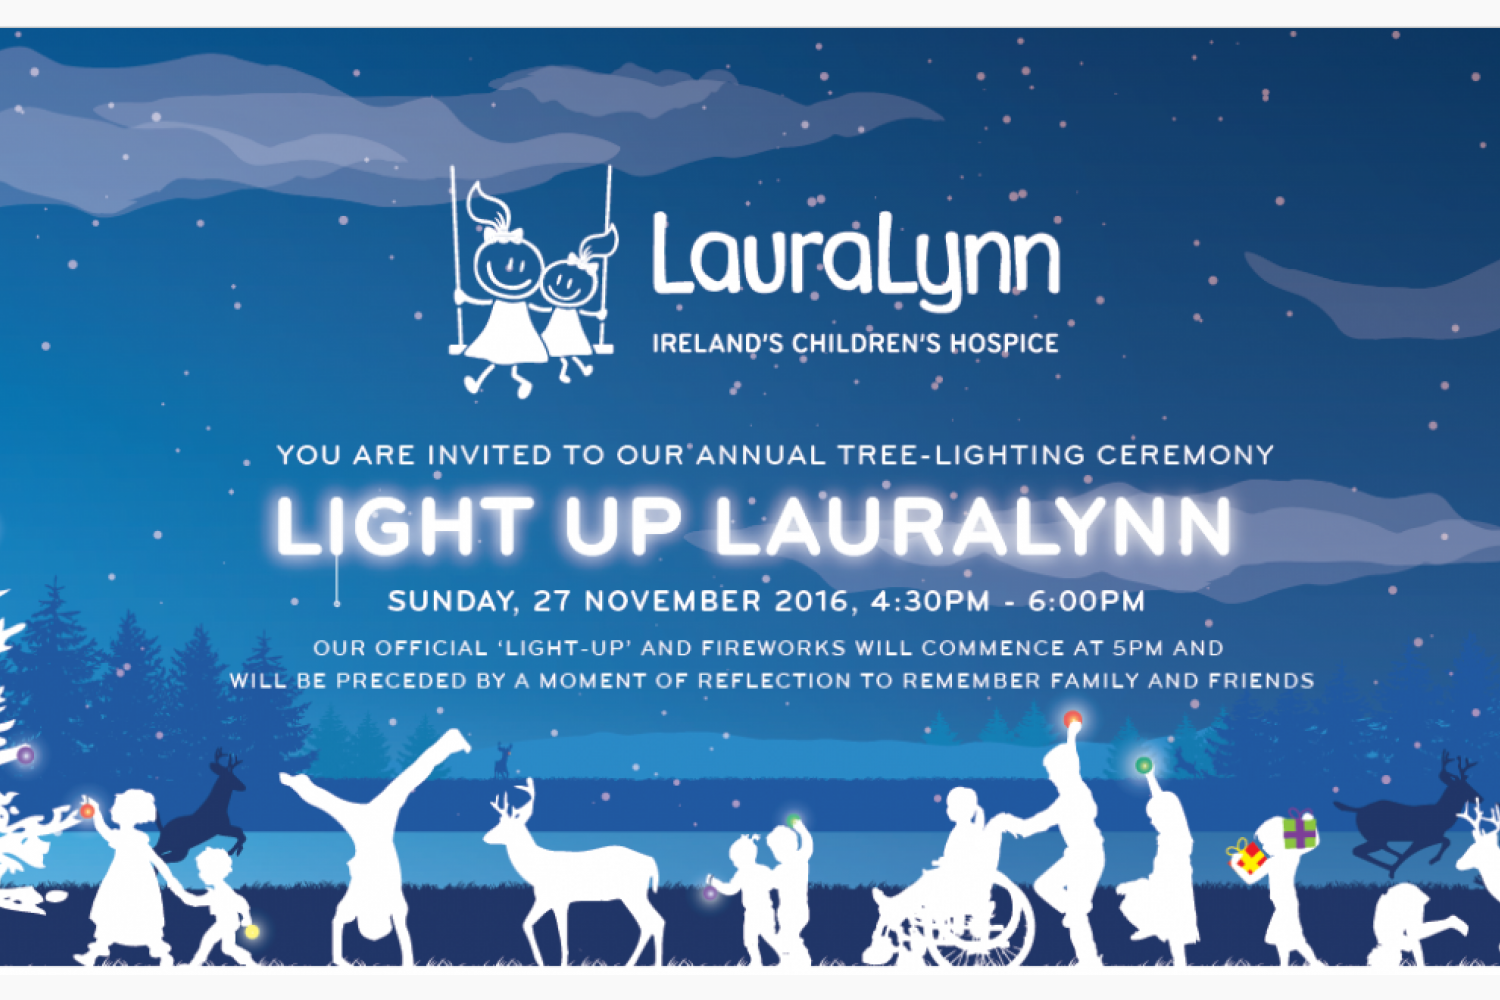 Light Up Laura Lynn  Sunday November 27th  4:30 - 6pm